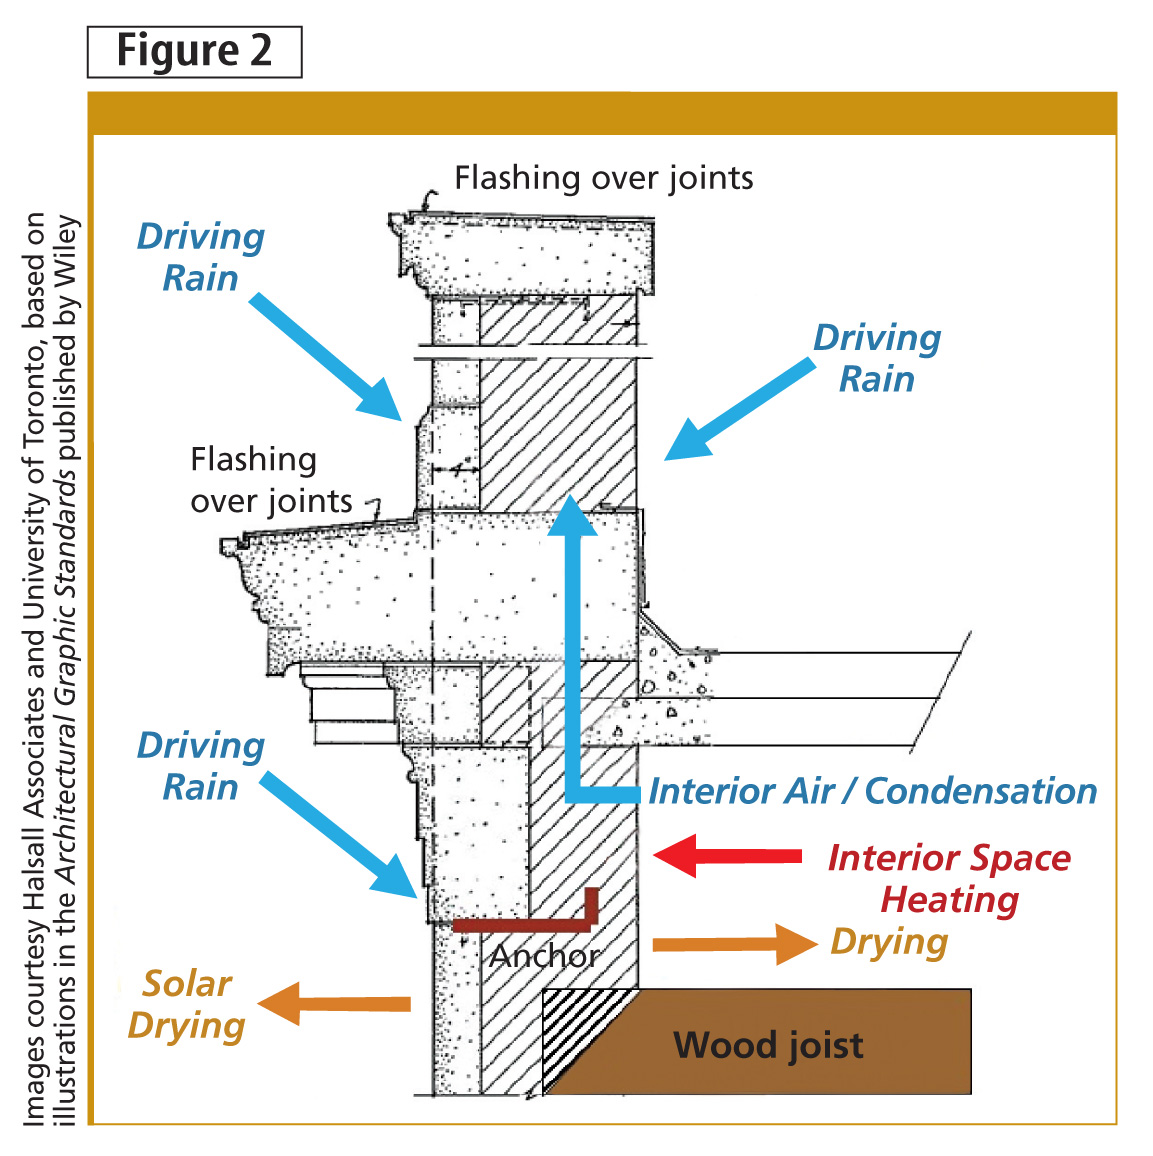 Interior and exterior environmental loads on solid masonry walls typical of pre-World War II construction. Images courtesy Halsall Associates and University of Toronto, based on illustrations in the Architectural Graphic Standards published by Wiley